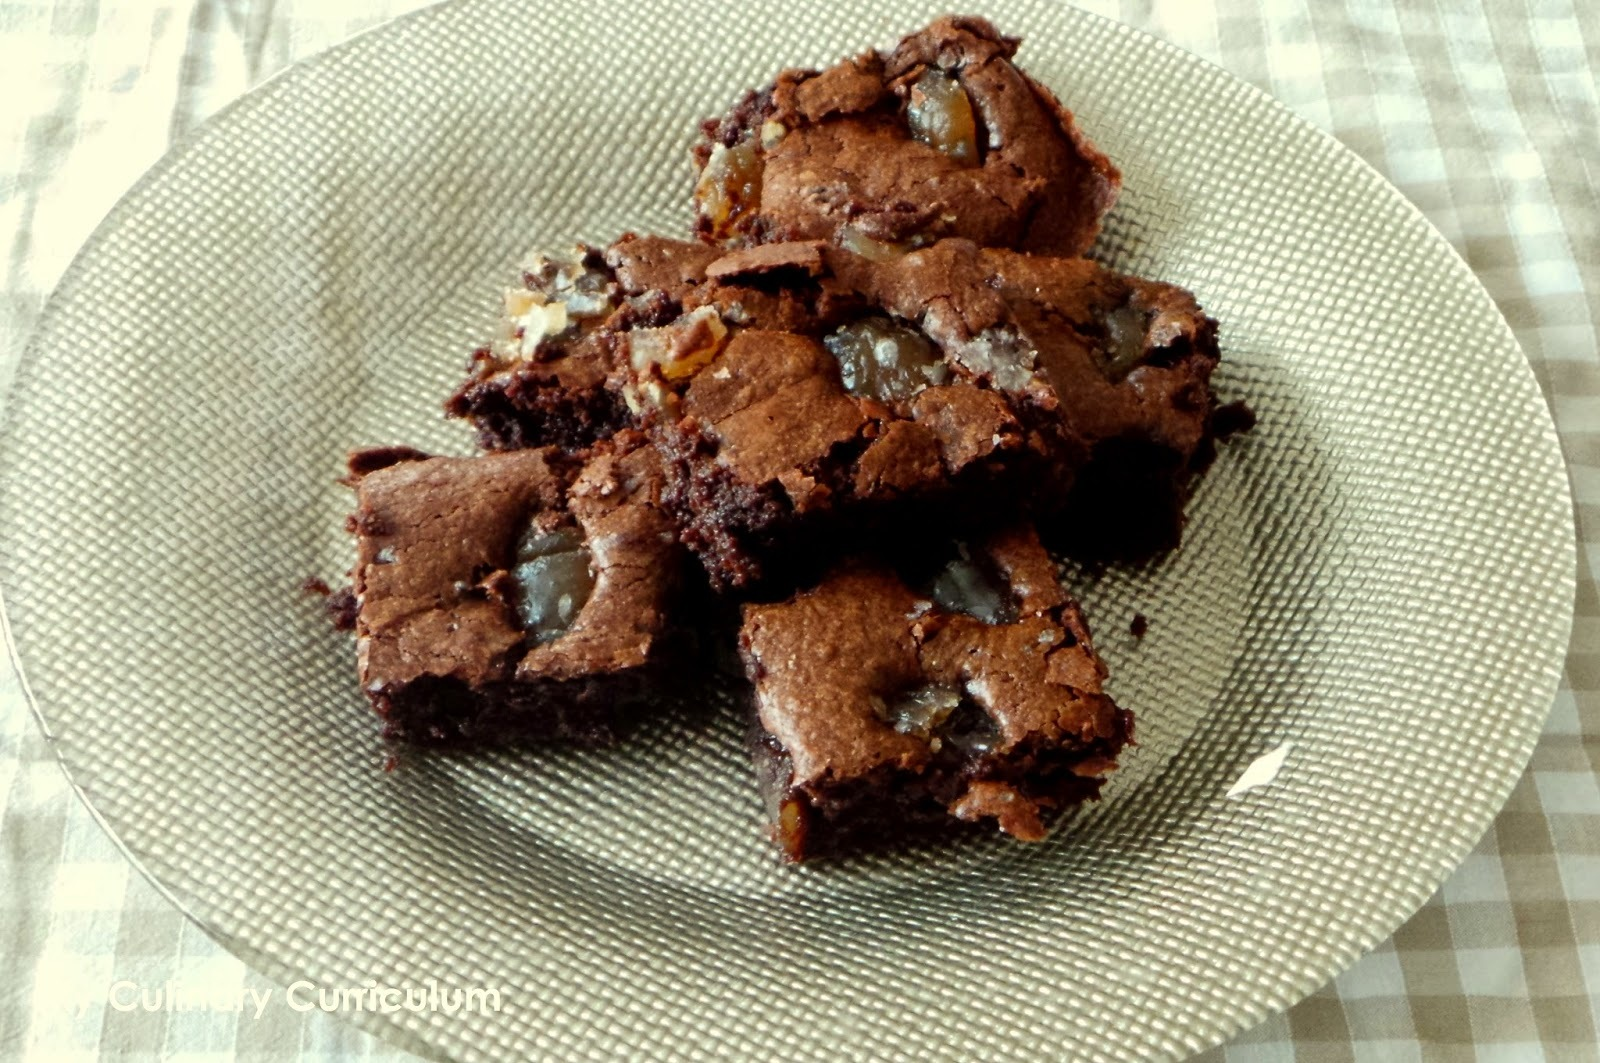 Brownies aux marrons glacés (Brownies with candied chestnuts)